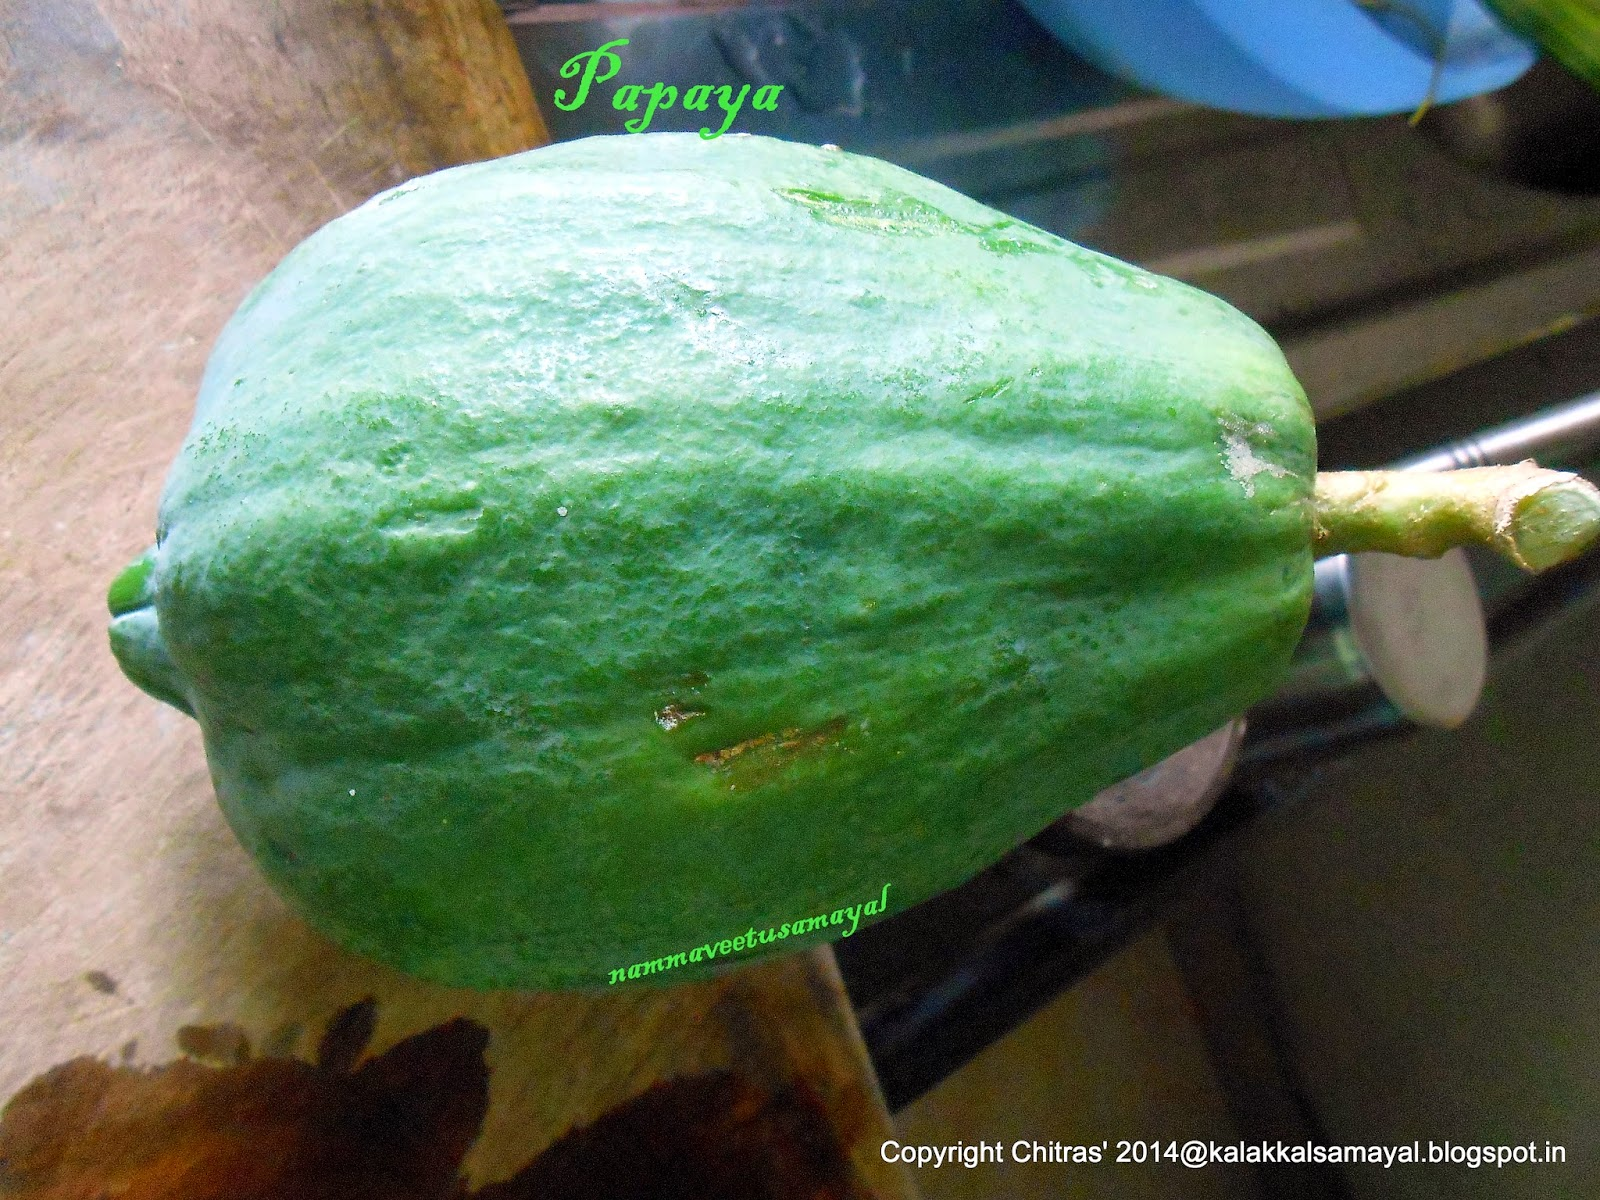 Papali kaai [ Raw papaya or unripe papaya ]